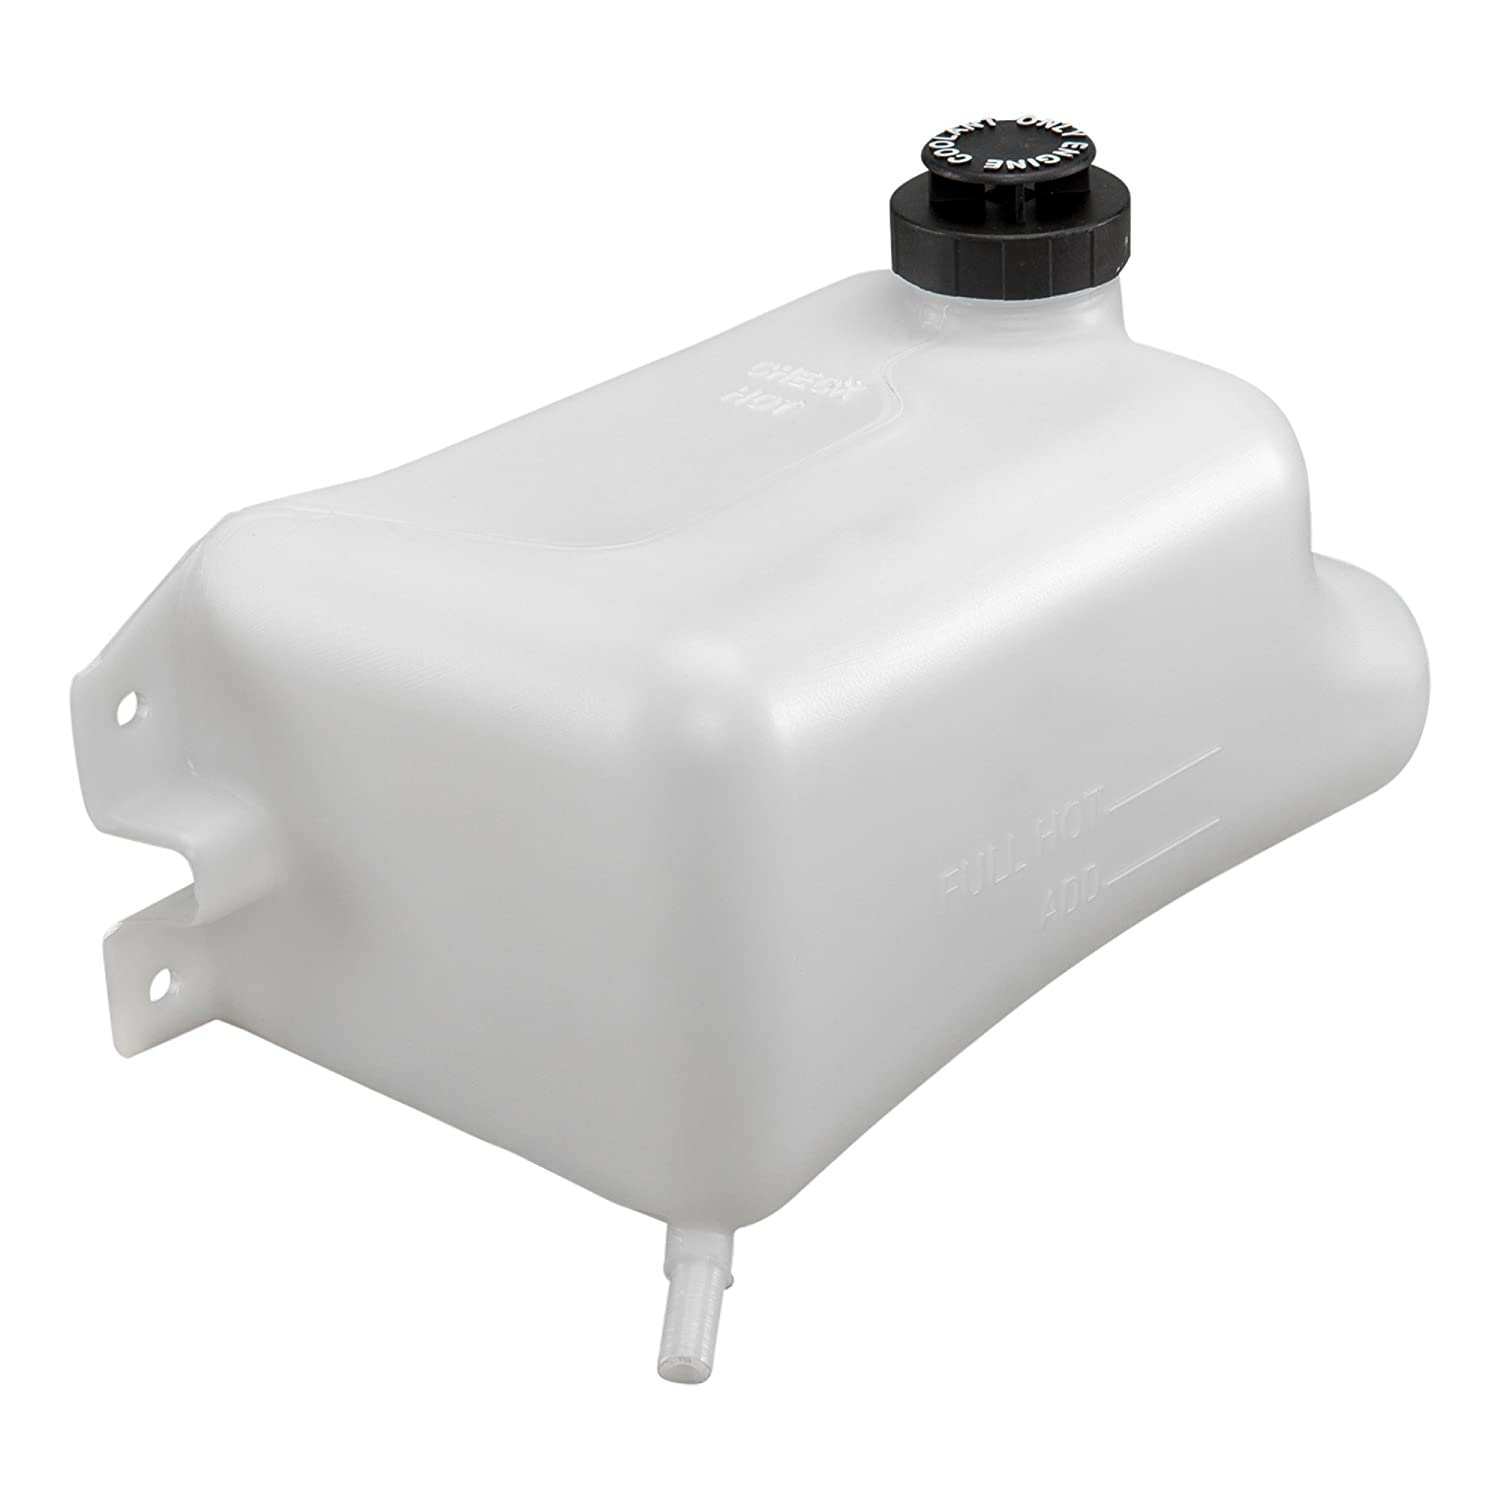 Coolant Tank Reservoir for 1988-1994 Chevy S10 Blazer GMC S15 Jimmy on